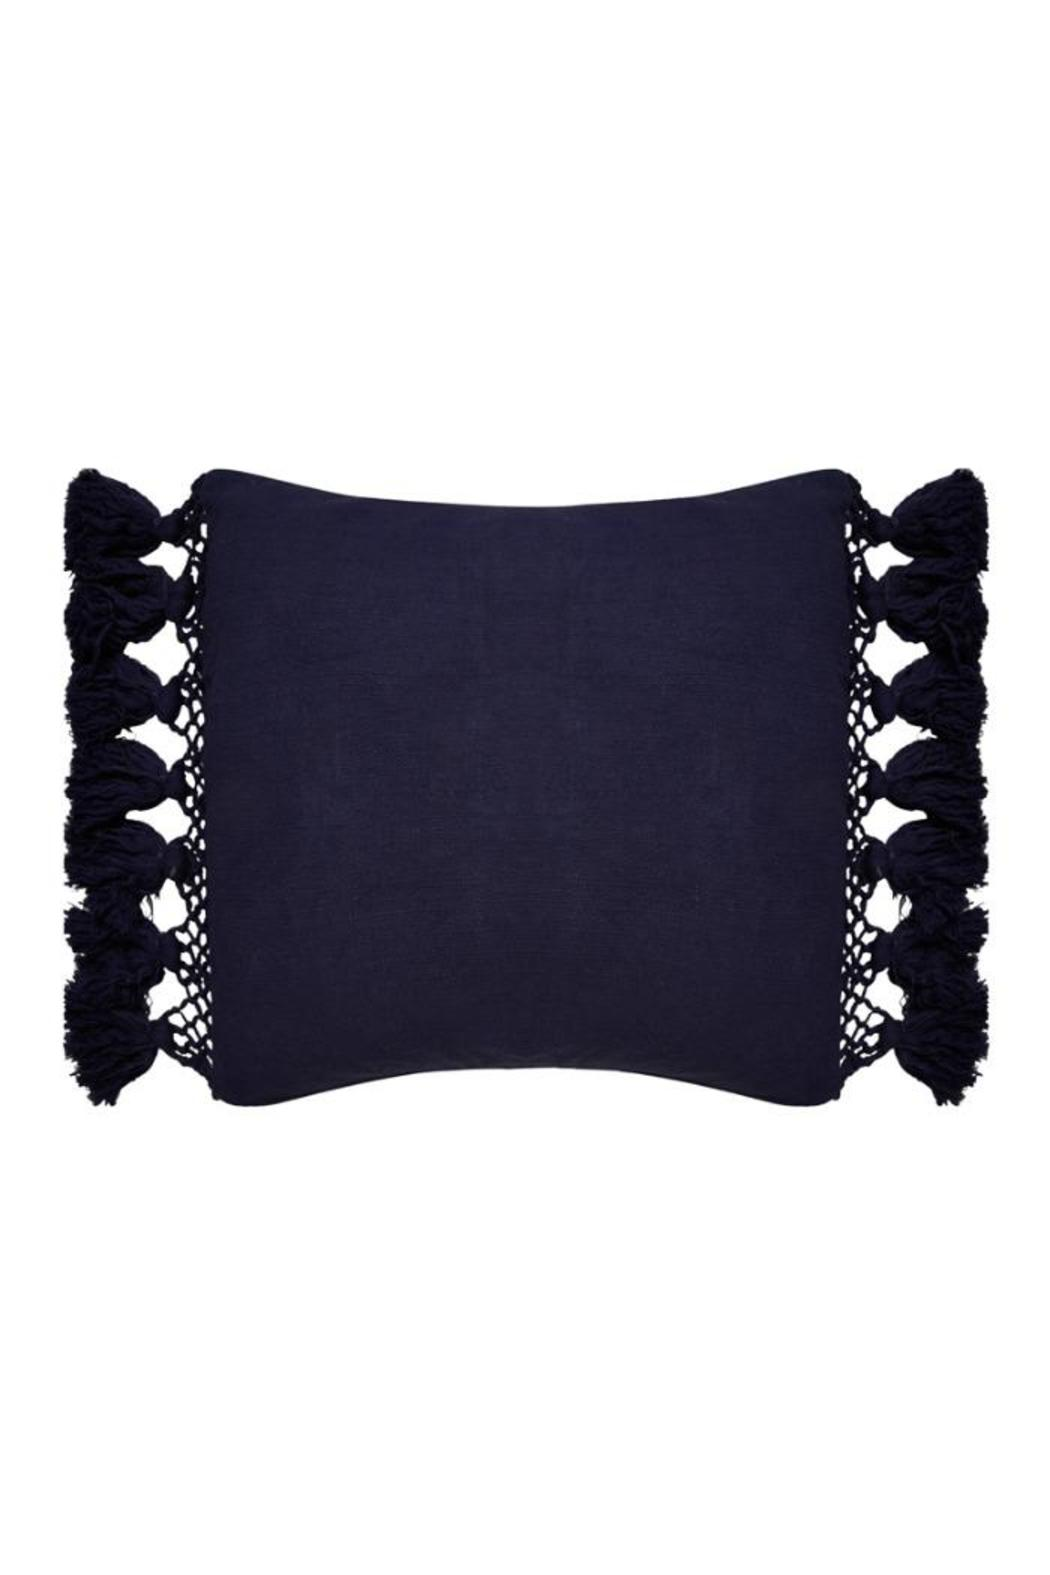 Kate Spade New York Tassel Throw Pillow from Austin by